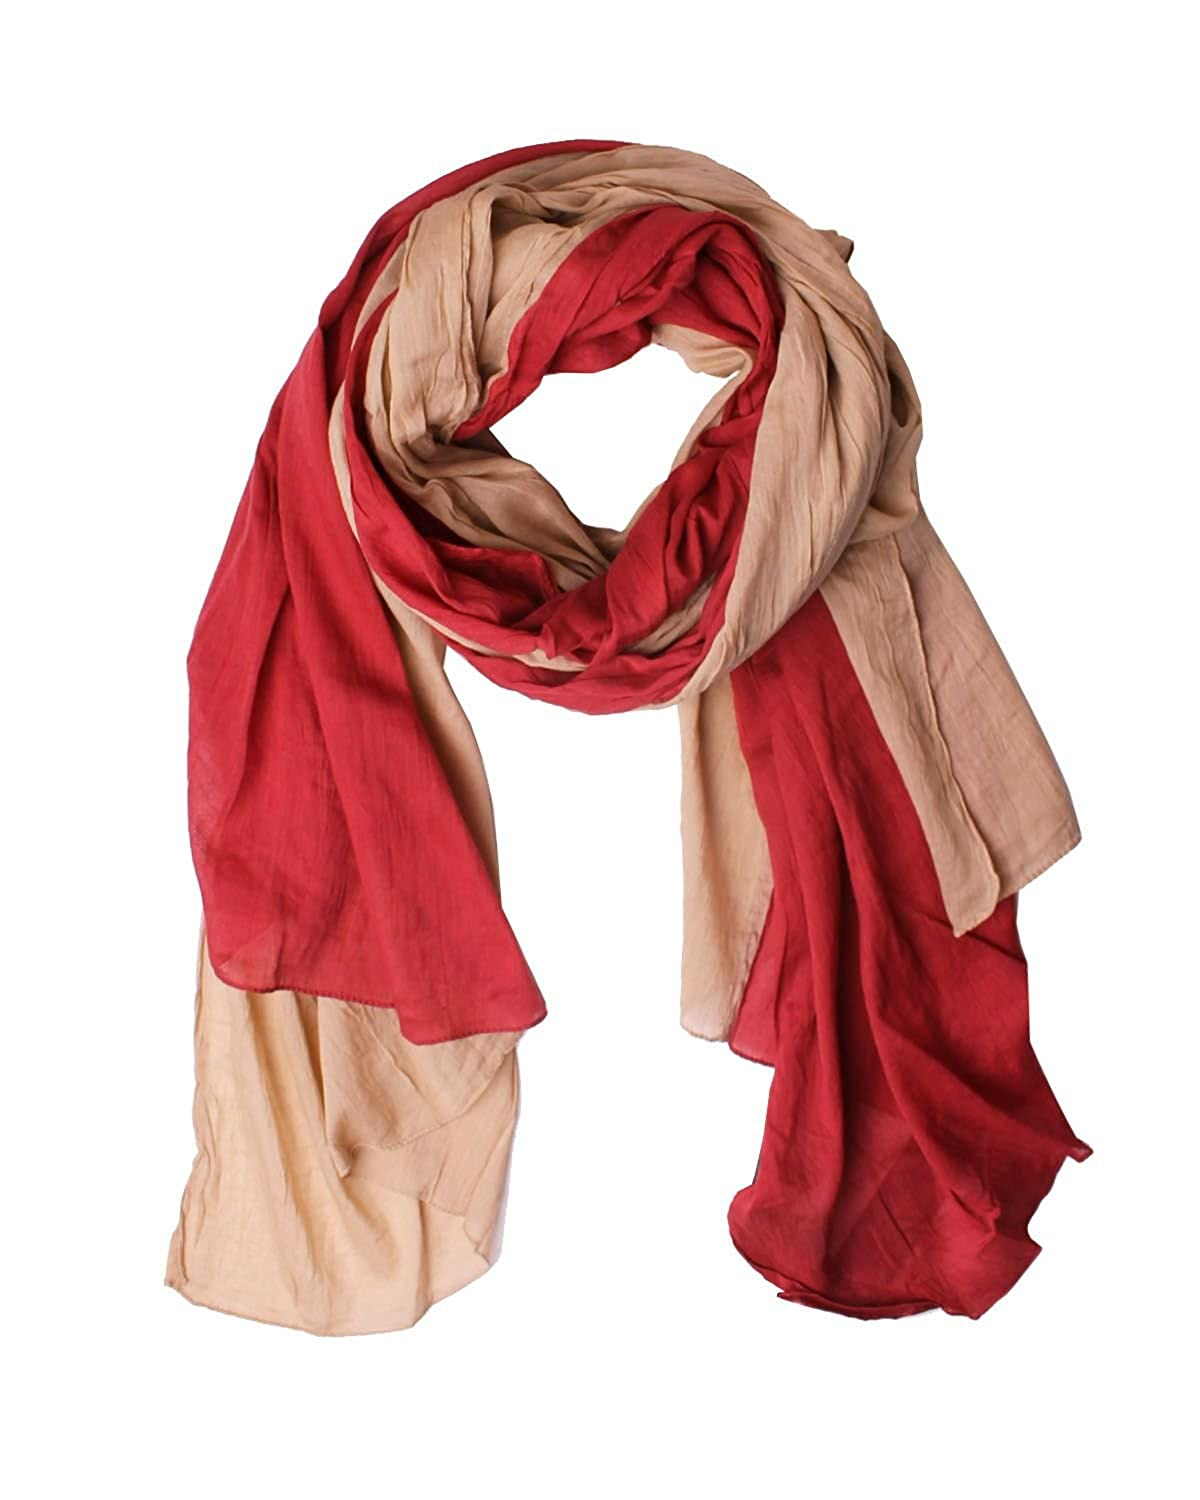 DIESEL BLACK GOLD - Coton Scarf 101x37 in / 256x95 cm REBELSEA One size